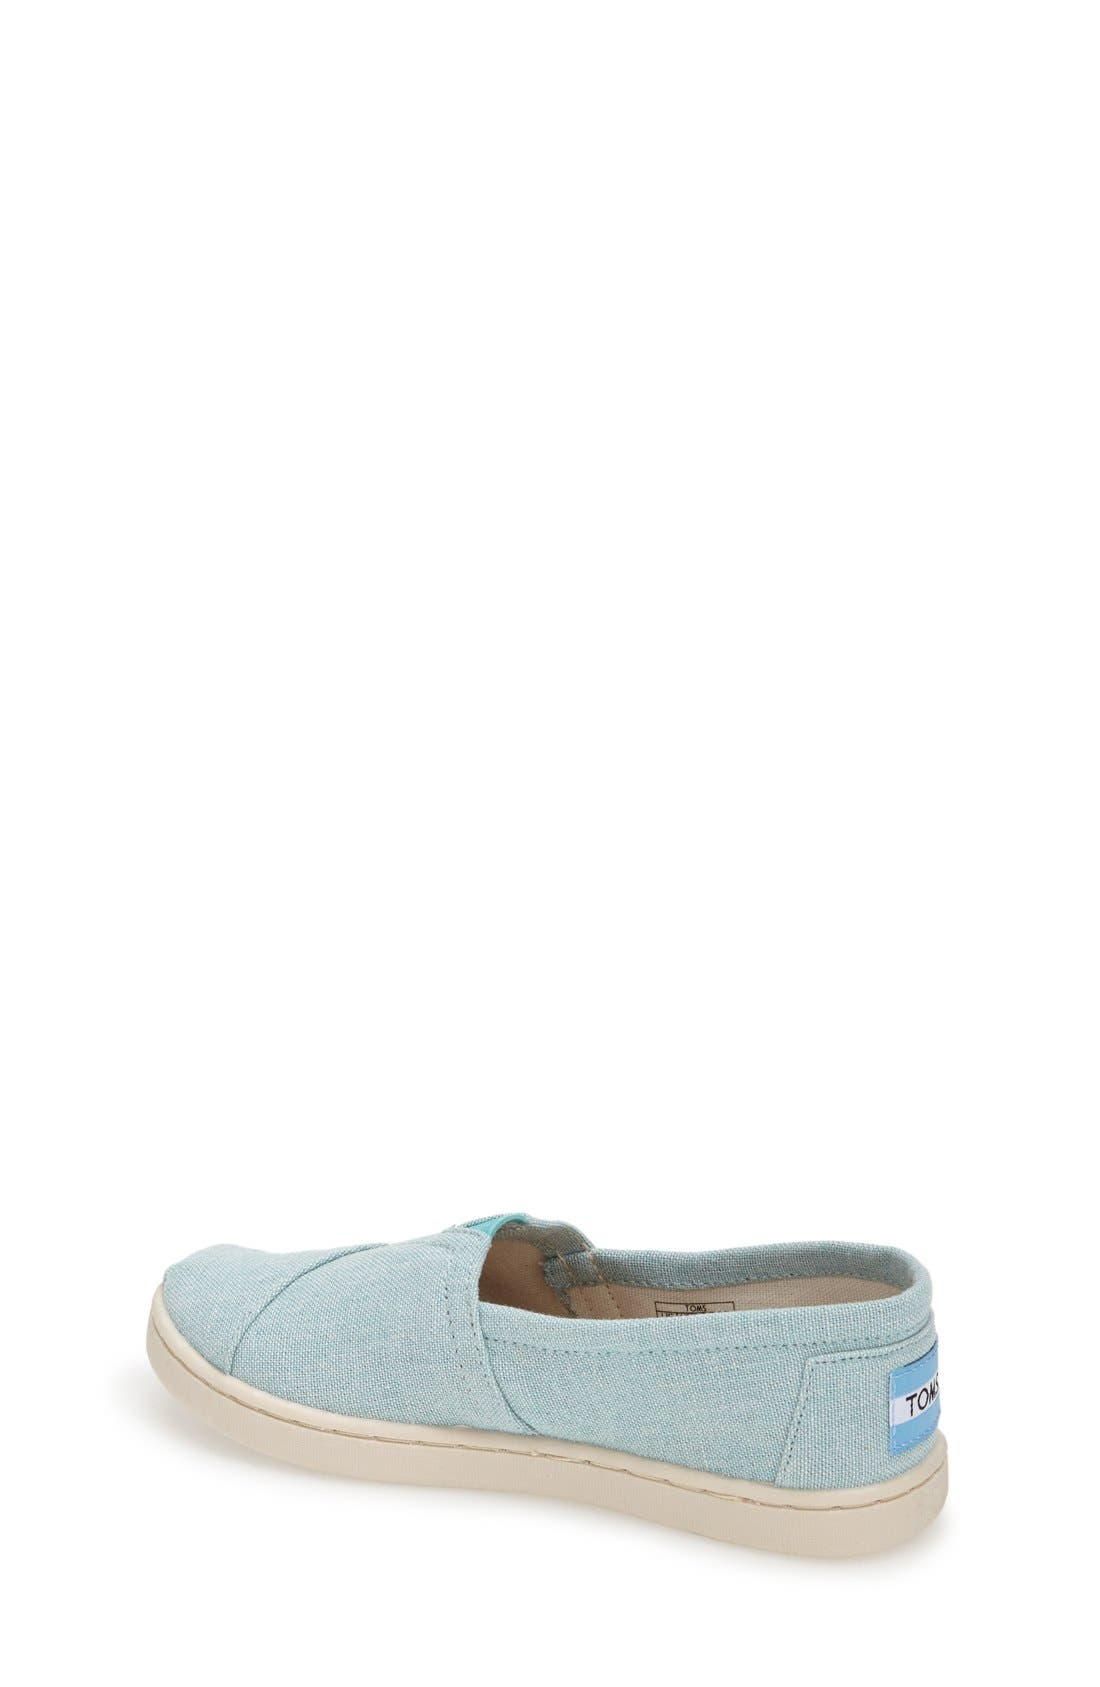 Alternate Image 2  - TOMS 'Classic Youth - Chambray' Slip-On (Toddler, Little Kid & Big Kid)